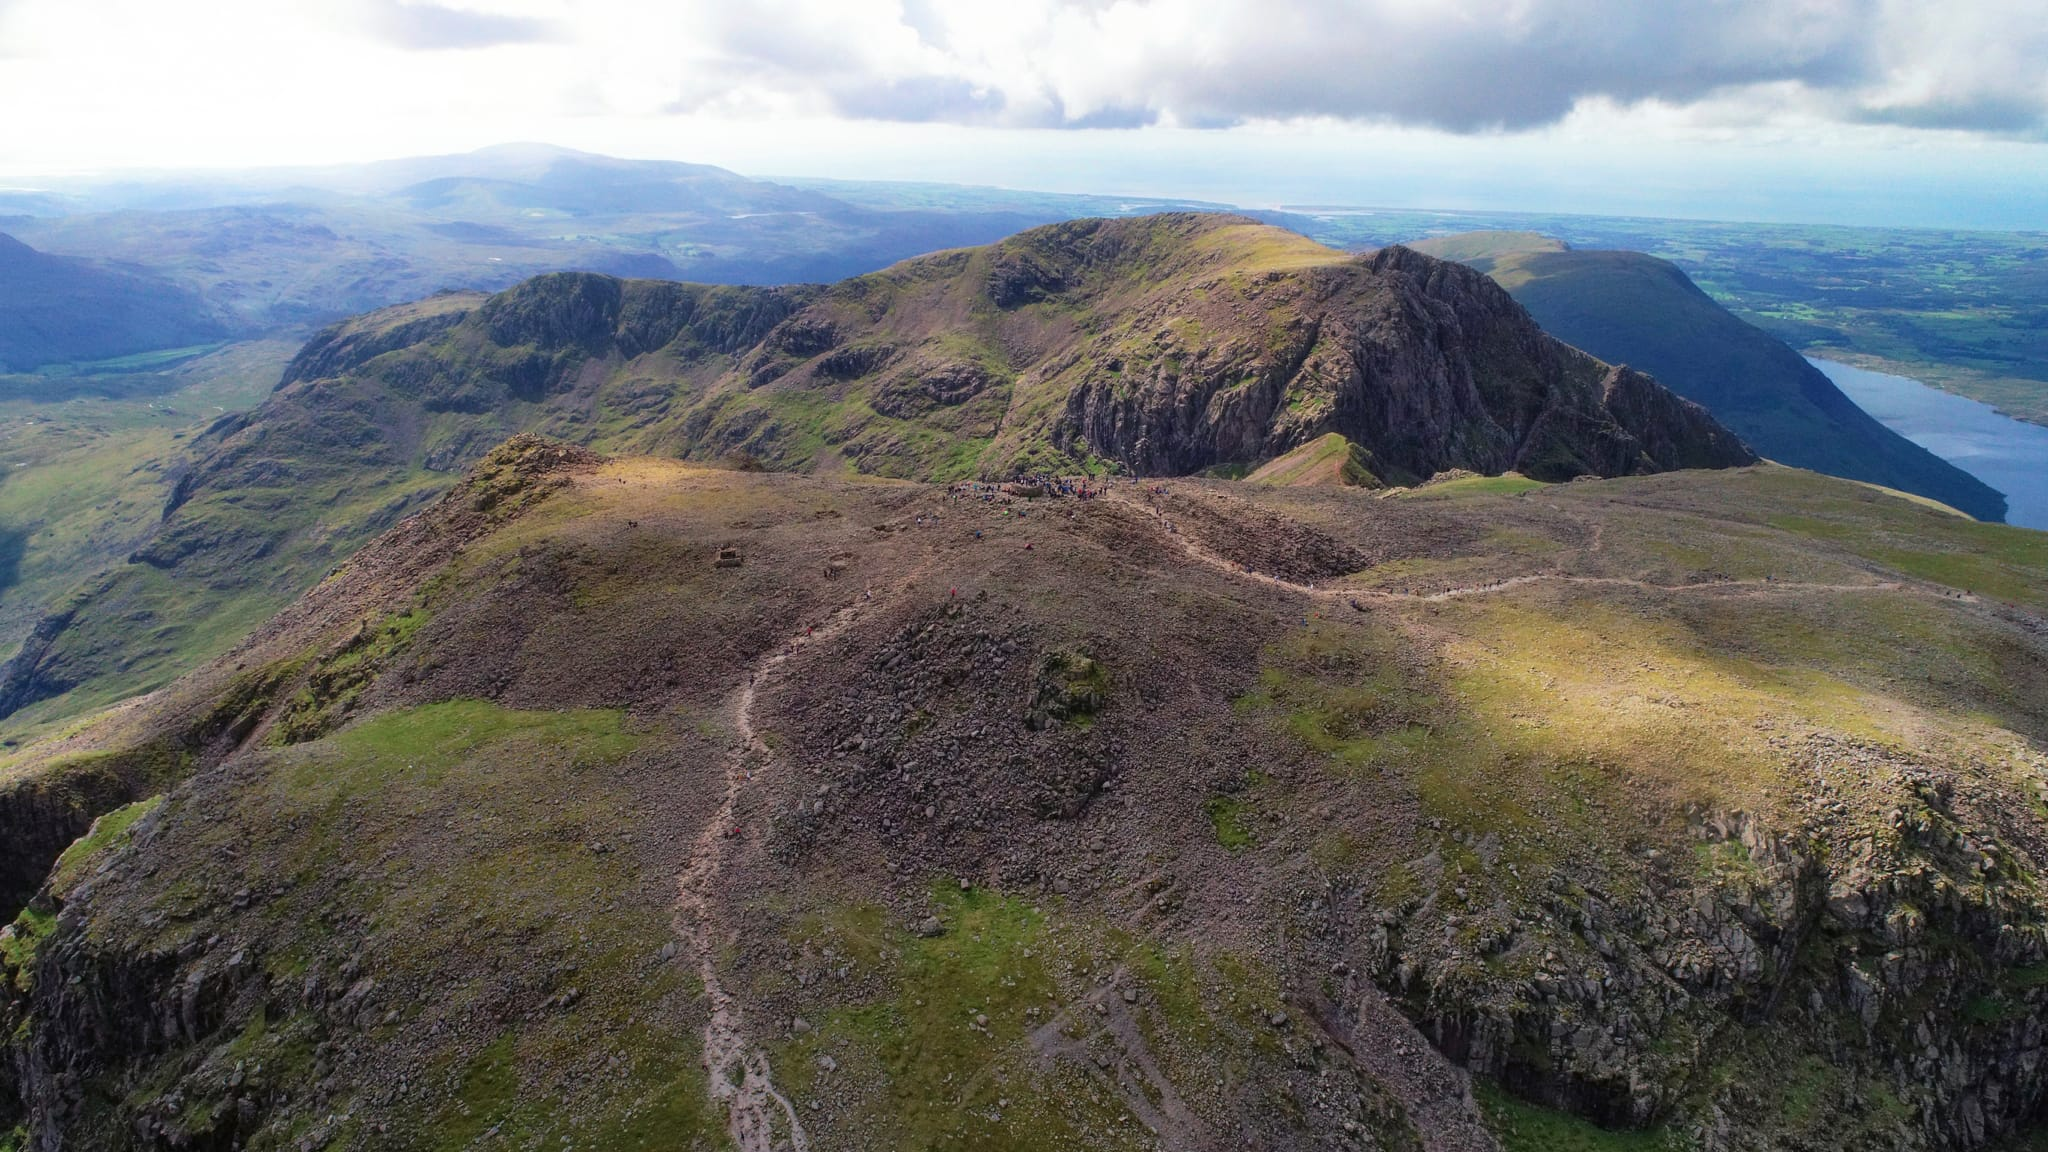 An expansive view of the Scafell Pike summit and beyond. Photo by Mocsar Balazs, licensed CC-by-SA-4.0